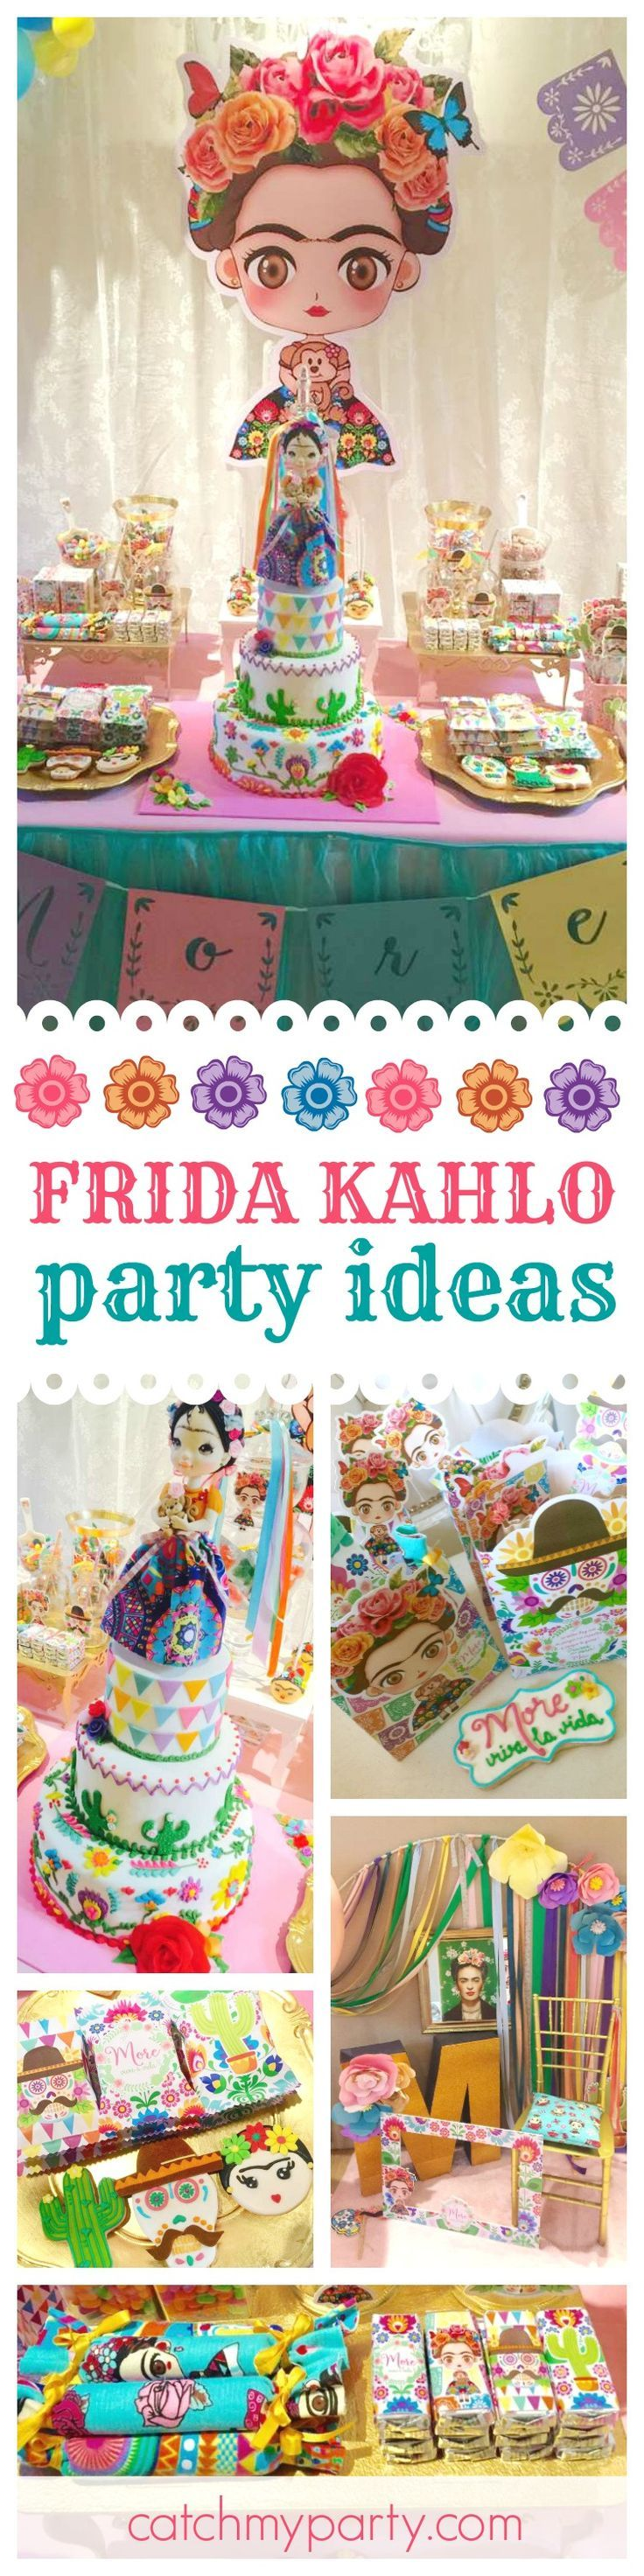 Don't miss this colorful & vibrant Frida Kahlo Mexican birthday party! The birthday cake is amazing!! See more party ideas and share yours at http://CatchMyParty.com